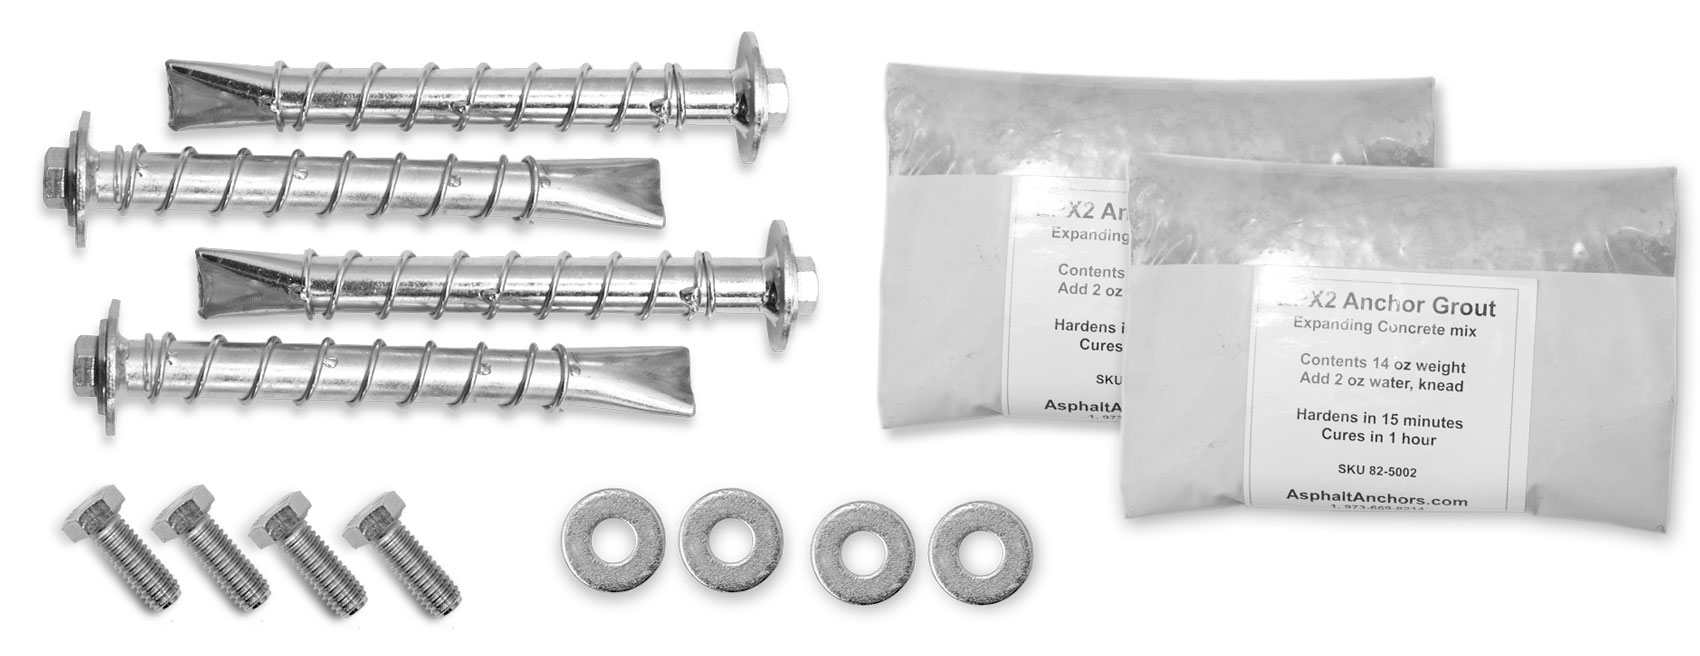 Asphalt Anchors Kit